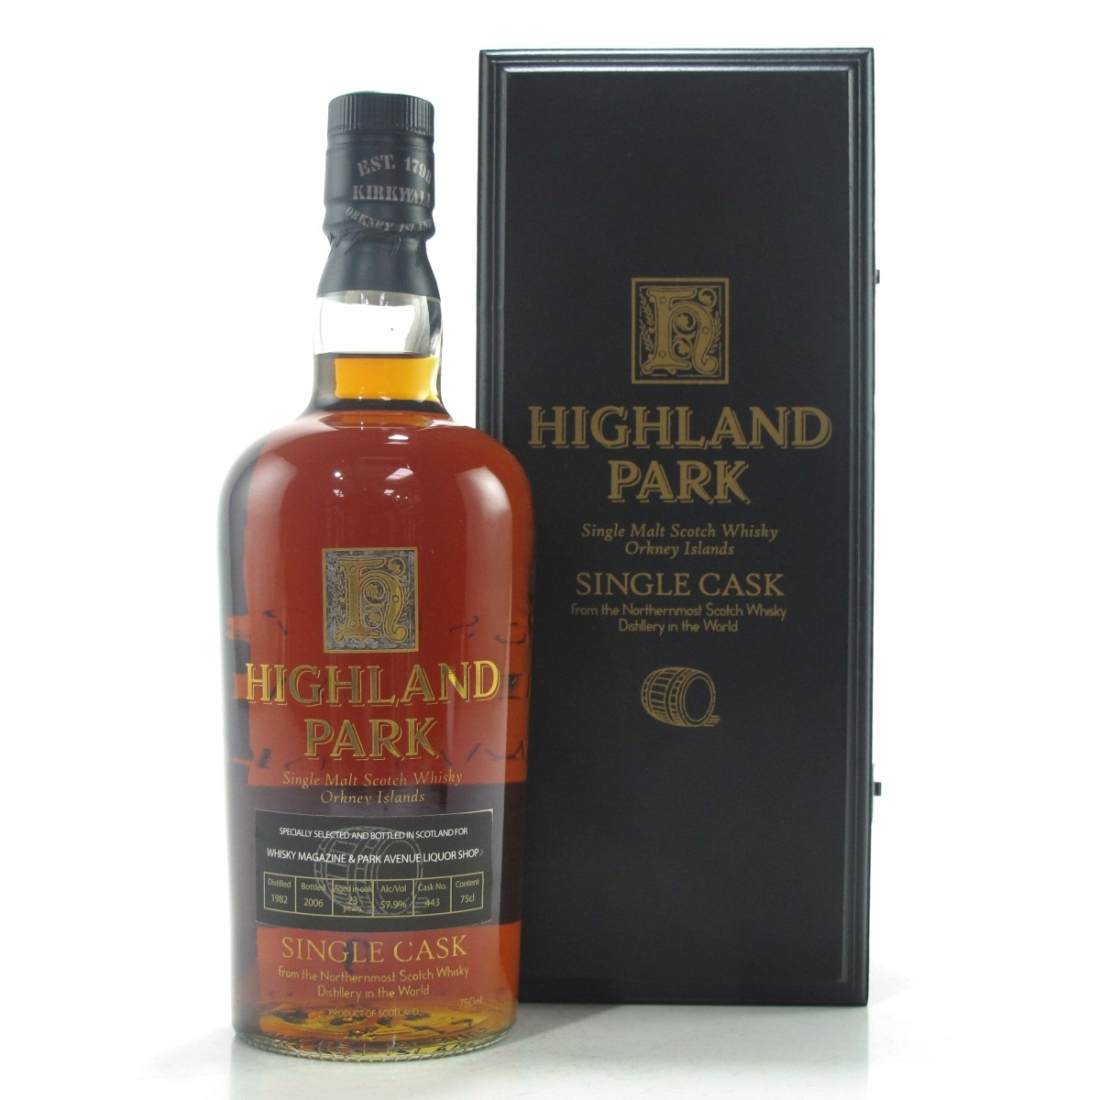 Highland Park 1982 Single Cask 23 Year Old #443 75cl / Whisky Magazine & Park Avenue Liquor Shop